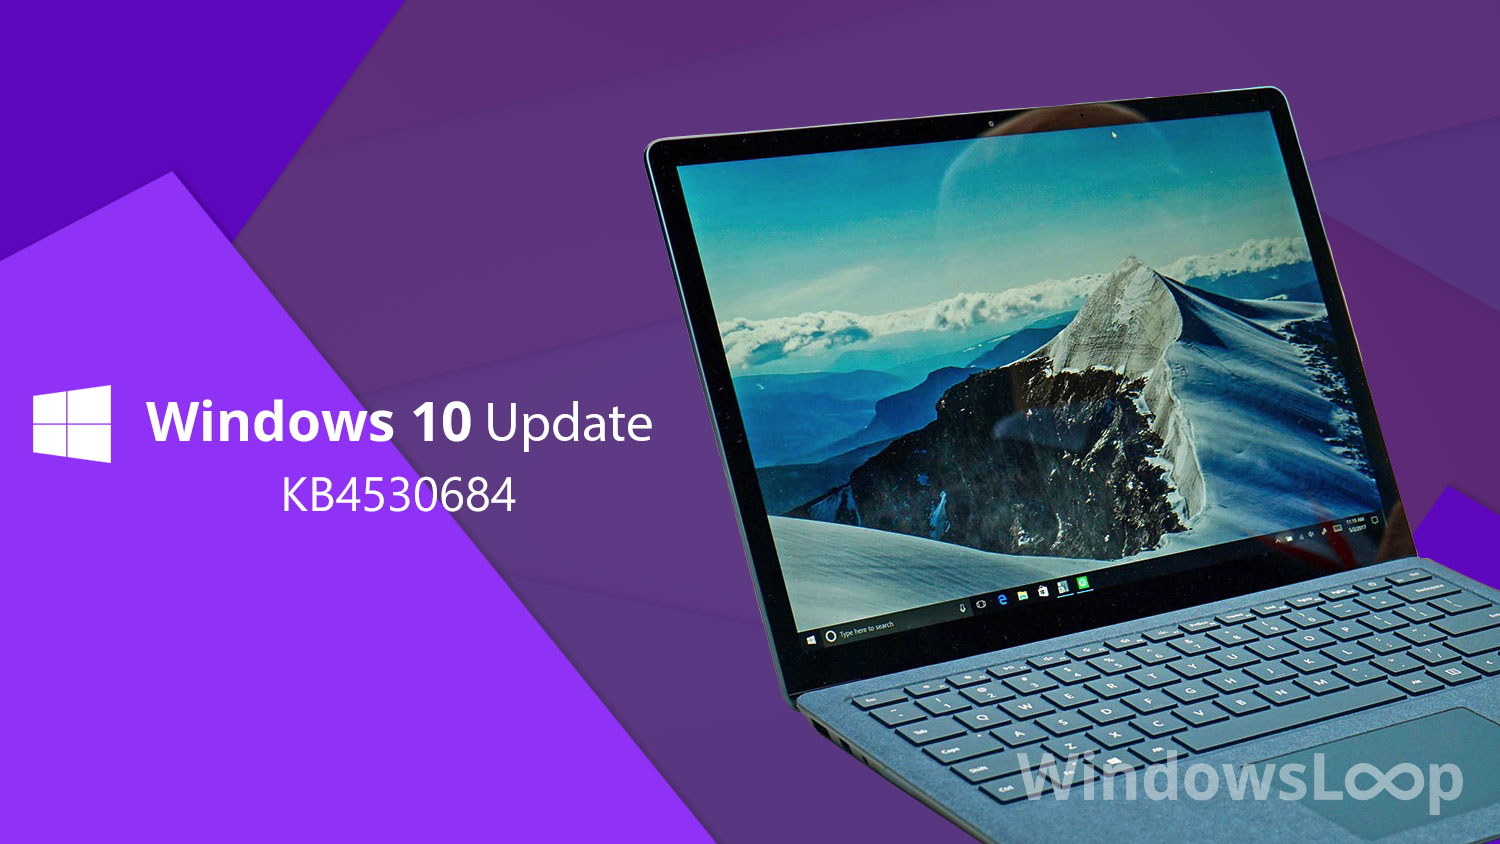 Not able to install Windows Update KB4530684? Here are some solutions